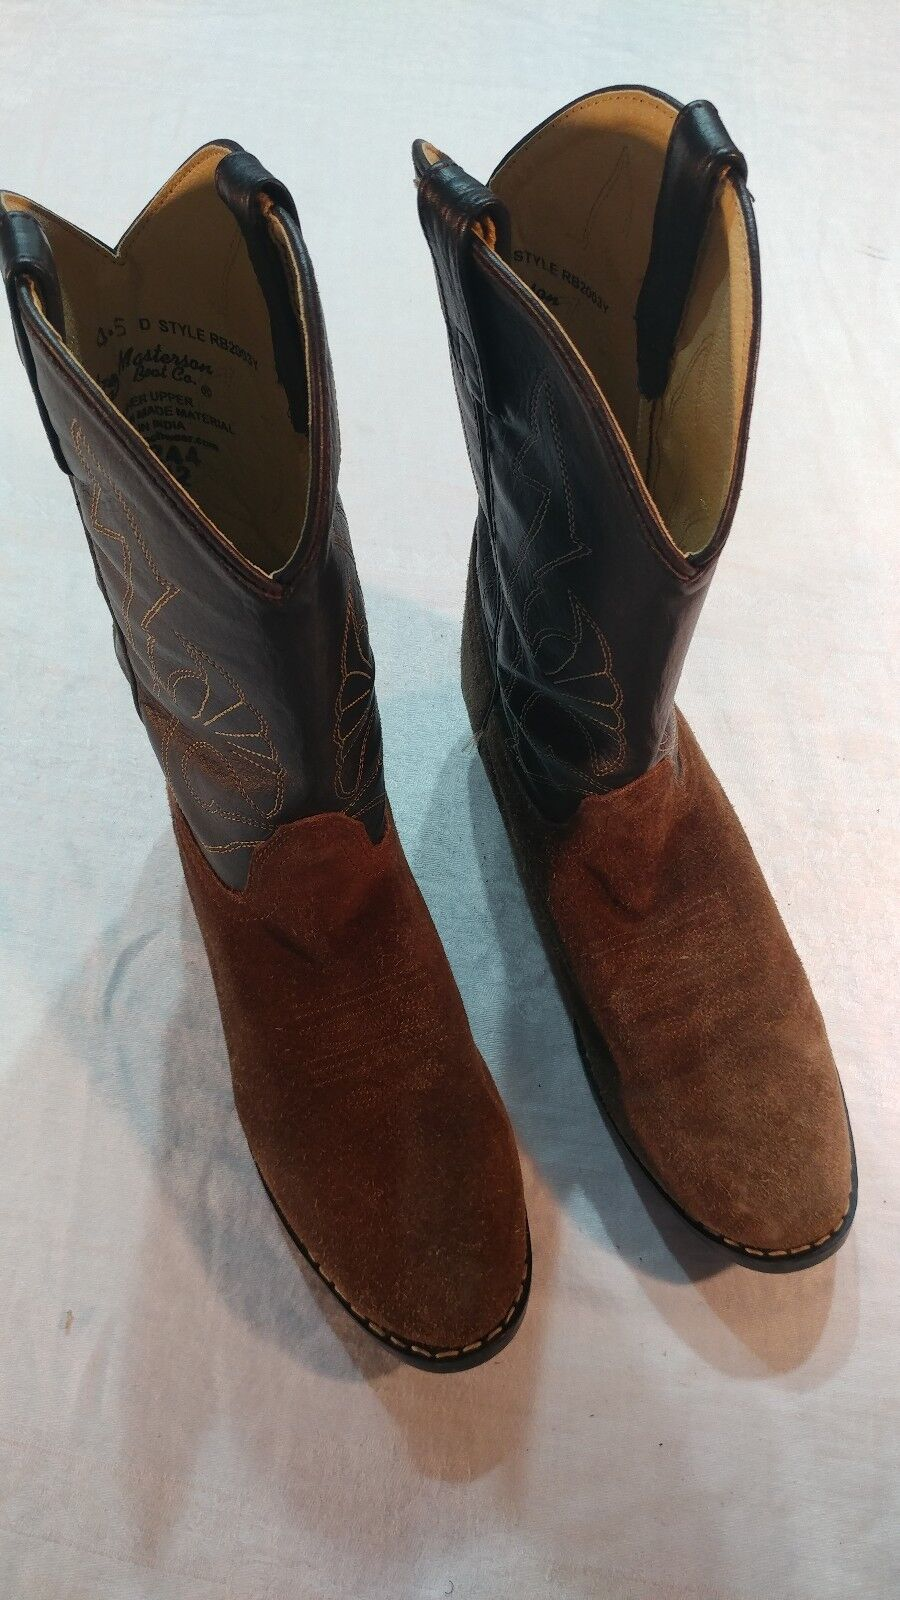 MASTERSON BOOT CO Brown Leather Western Style Boots Size 4.5 D Womens